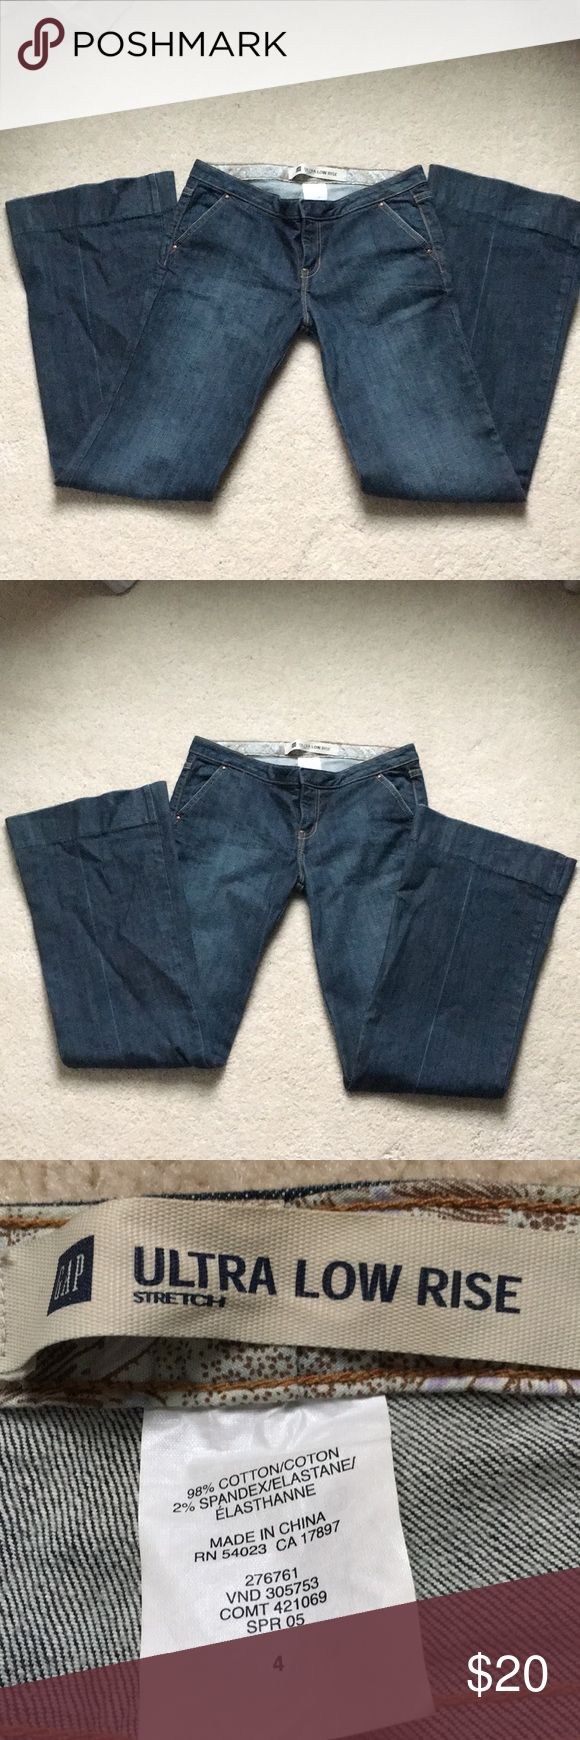 GAP  ultra low rise jeans. Size 4 Dark rinse GAP jeans EUC. Inseam 32 in. Waist 31 in. GAP Jeans Flare & Wide Leg